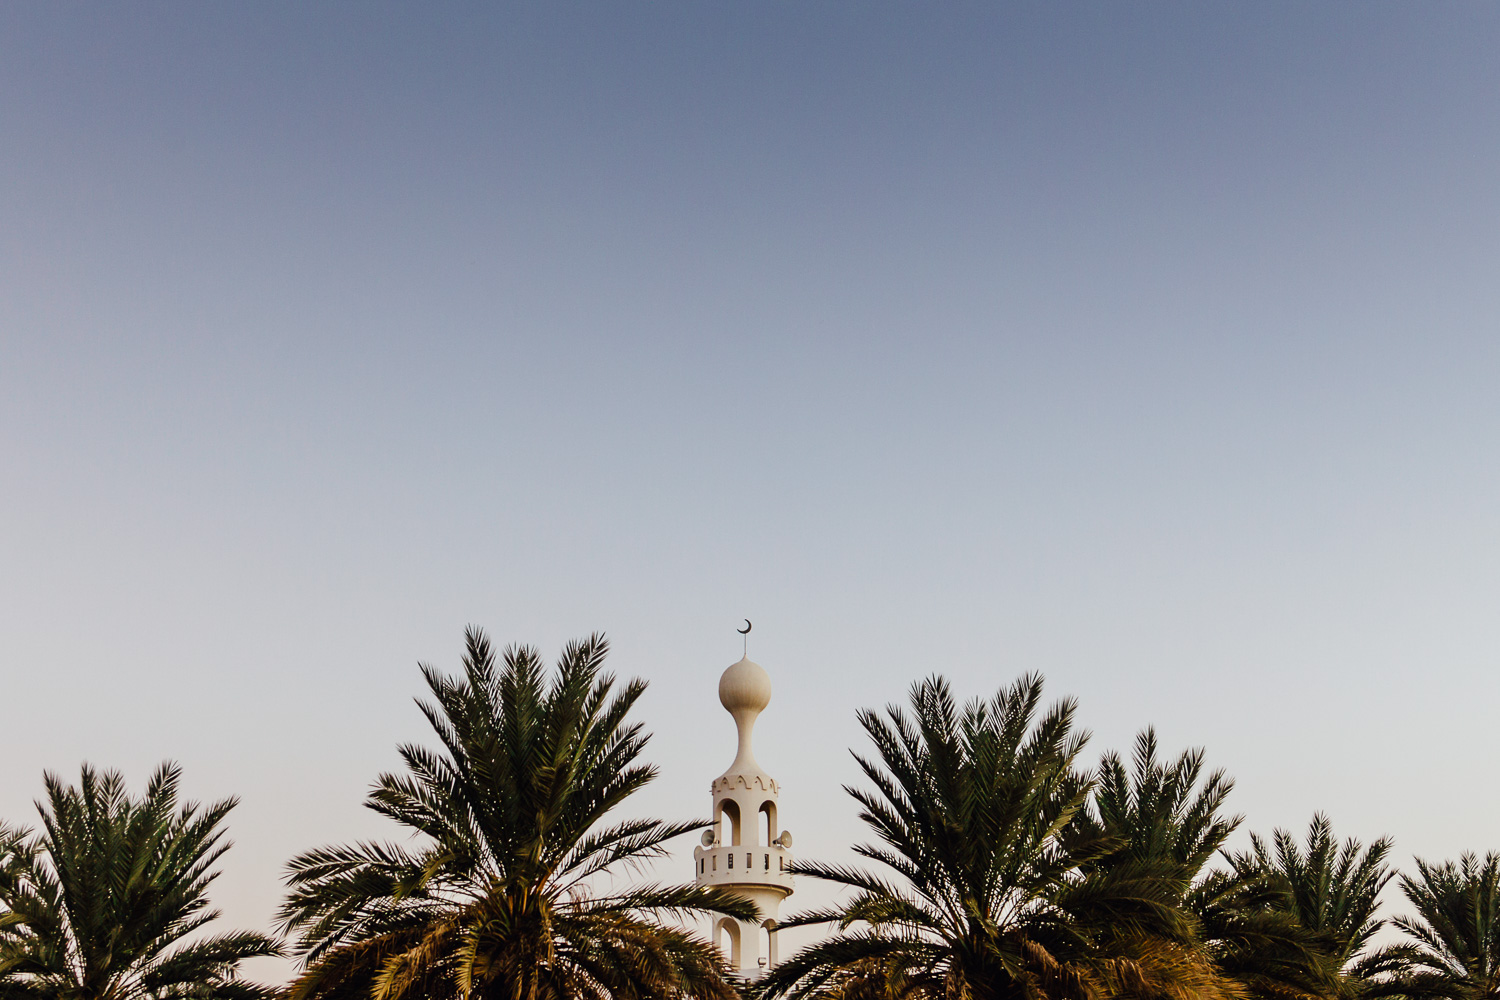 Mosque-Architecture-Sky-Durazo-Photography-Project-Travel.jpg